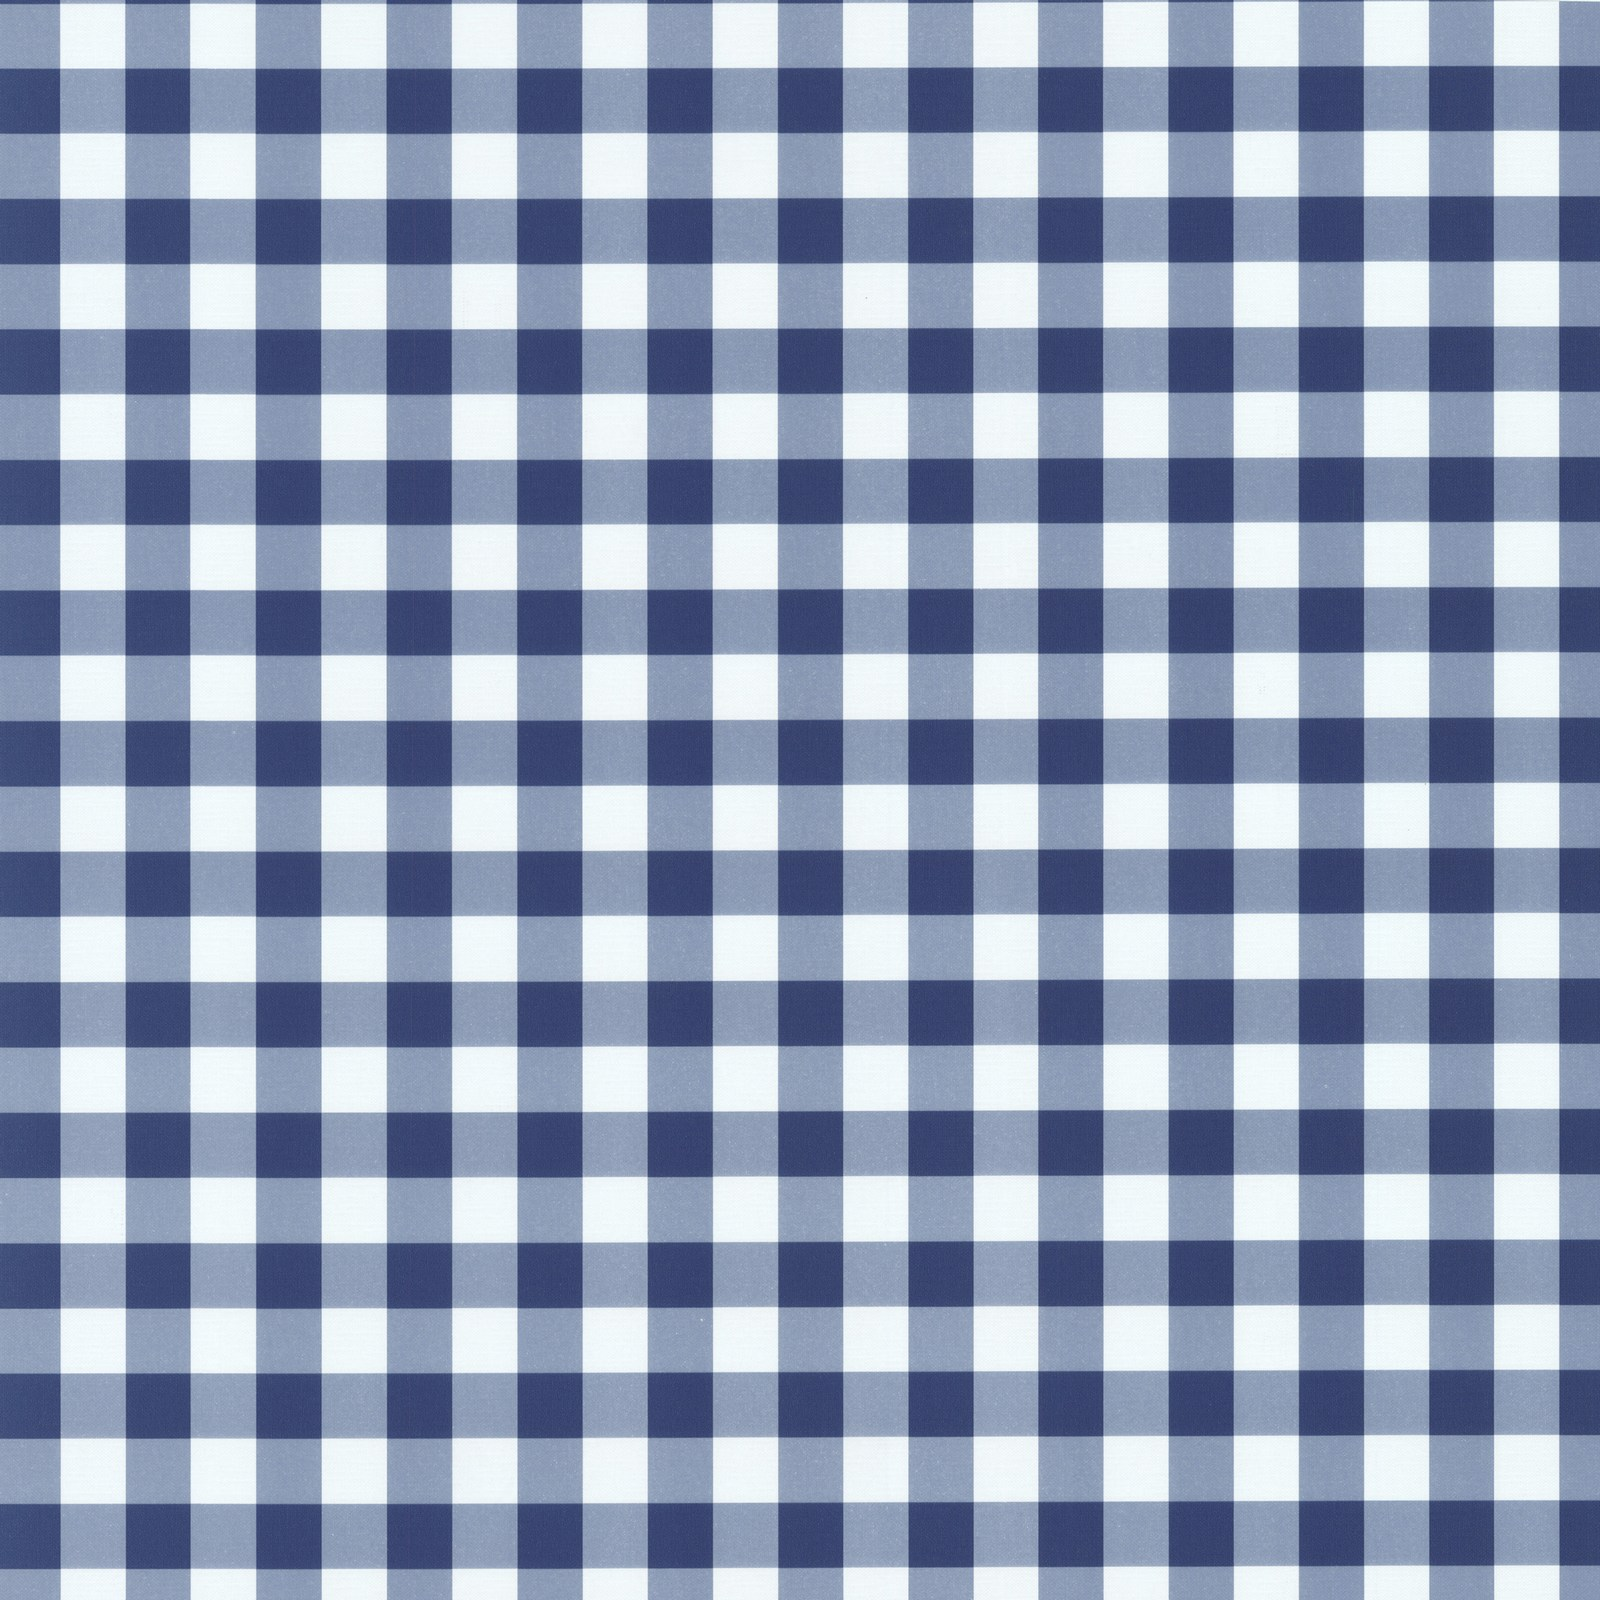 Blue White Gingham Check Wallpaper by PS International 05638 40 1600x1600